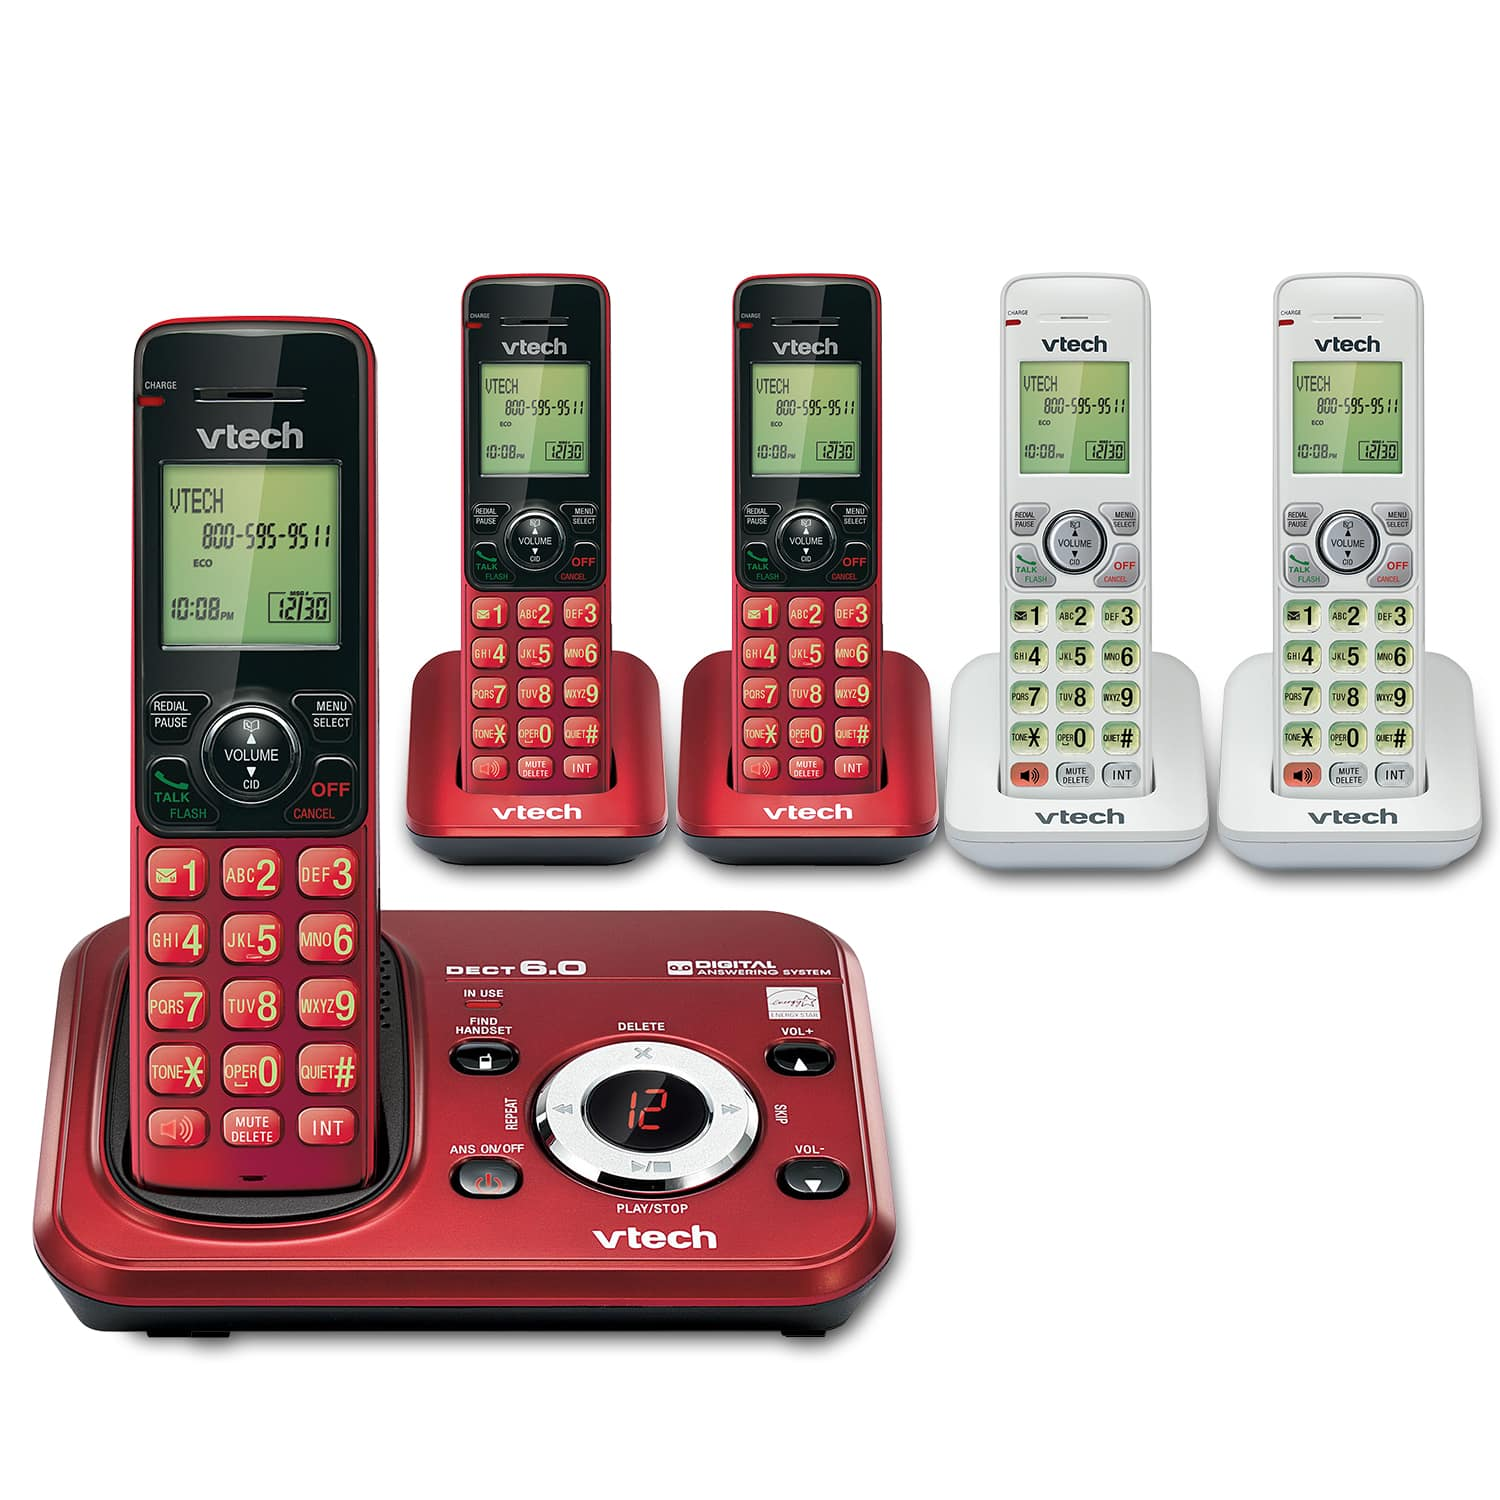 5 Handset FoneDeco Answering System with Caller ID/Call Waiting